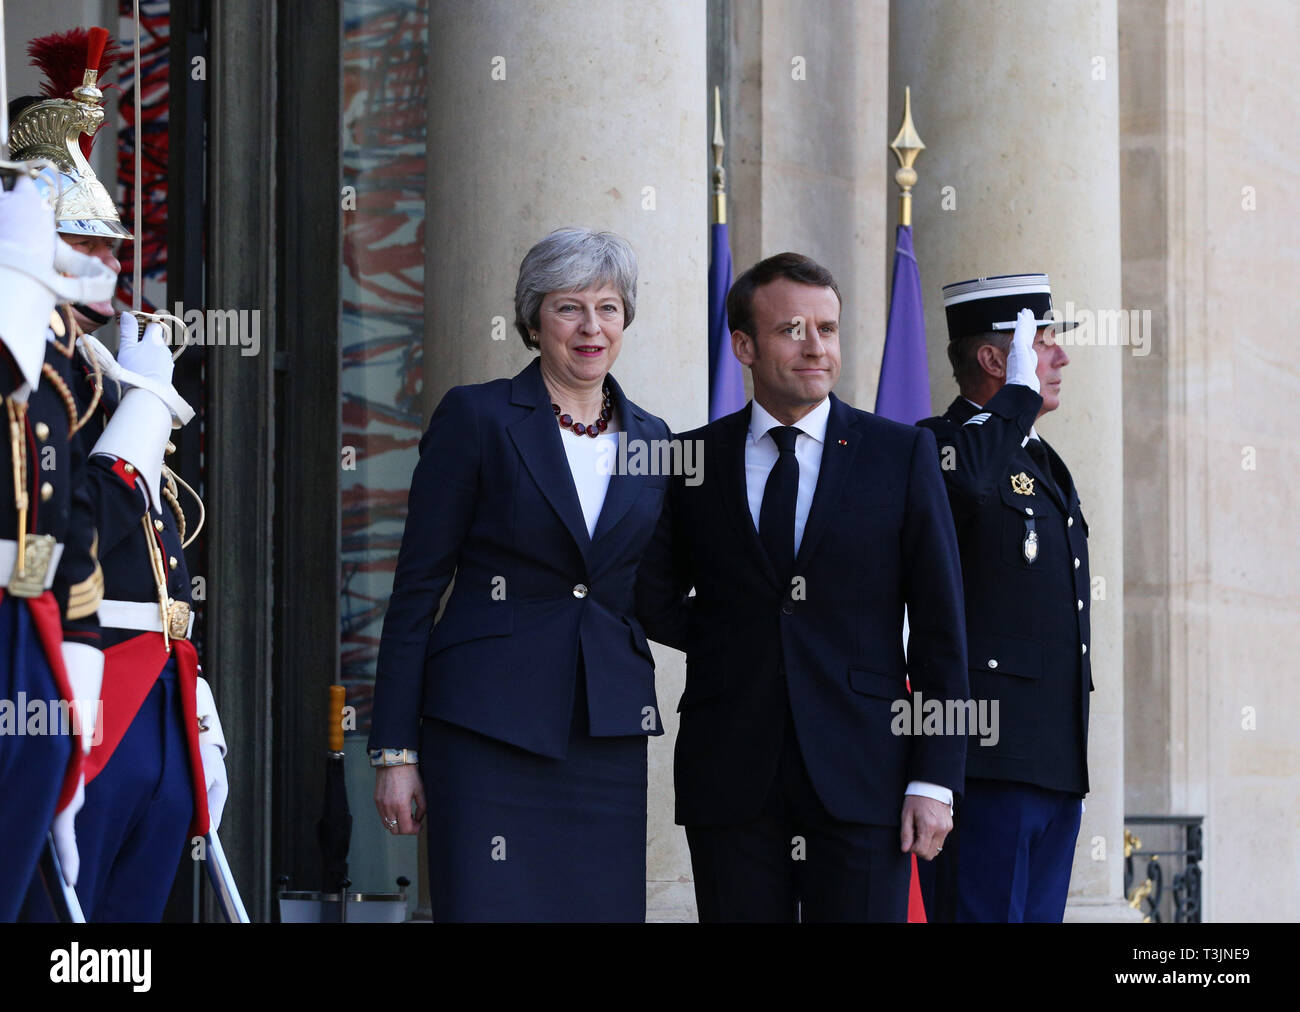 Paris, France. 9th Apr, 2019. French President Emmanuel Macron (R, front) welcomes visiting British Prime Minister Theresa May at the Elysee Palace in Paris, France, April 9, 2019. May held talks in Berlin with German Chancellor Angela Merkel and in Paris with French President Emmanuel Macron during a day of whistle-stop diplomacy in her race to win a delay to the country's departure from the European Union (EU). Credit: Gao Jing/Xinhua/Alamy Live News - Stock Image